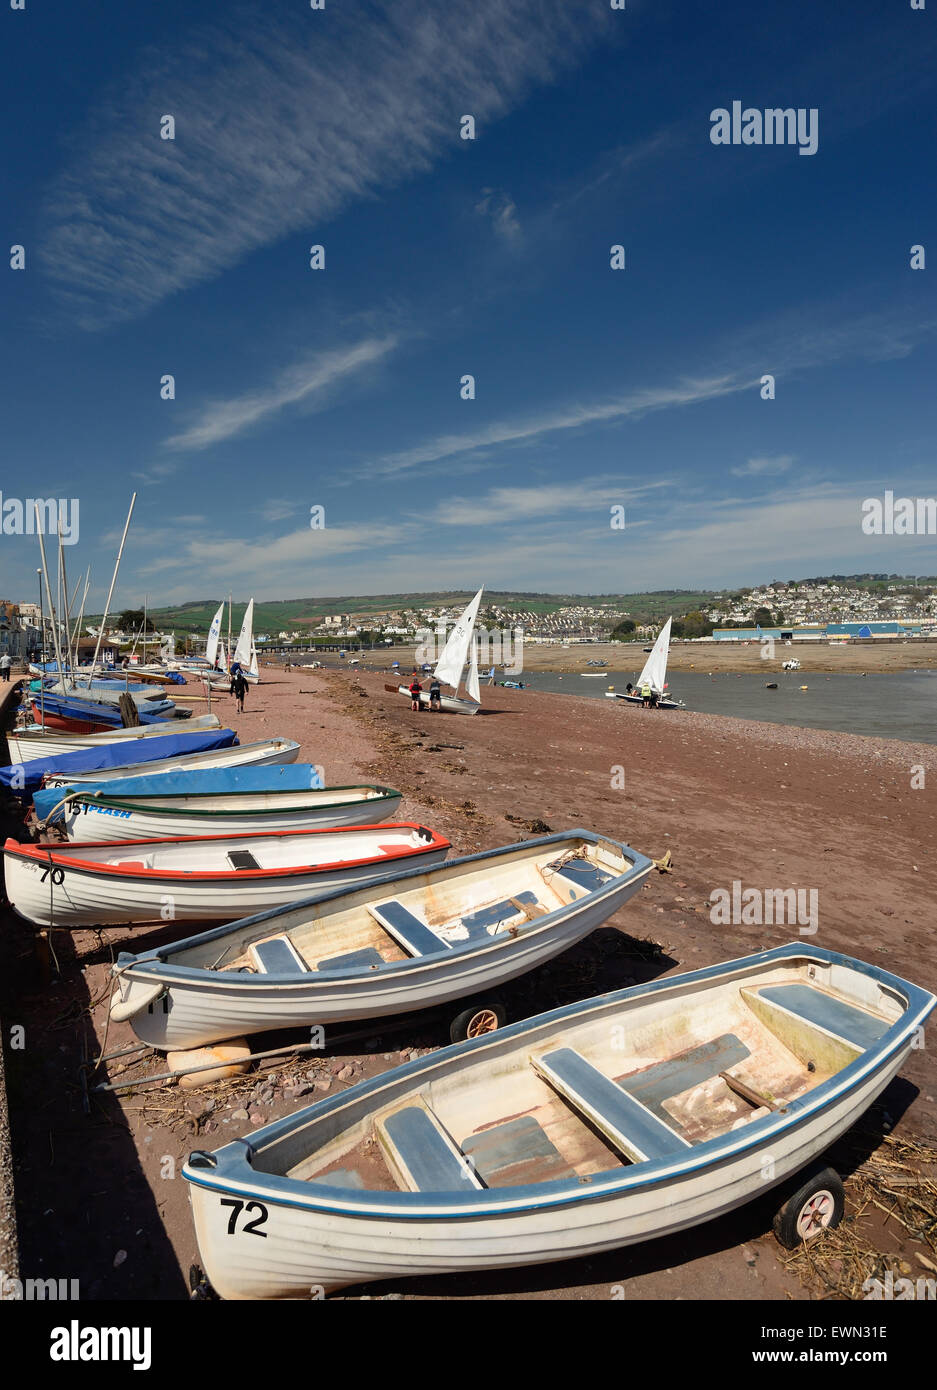 Boats on Shaldon beach, looking towards Teignmouth. Stock Photo